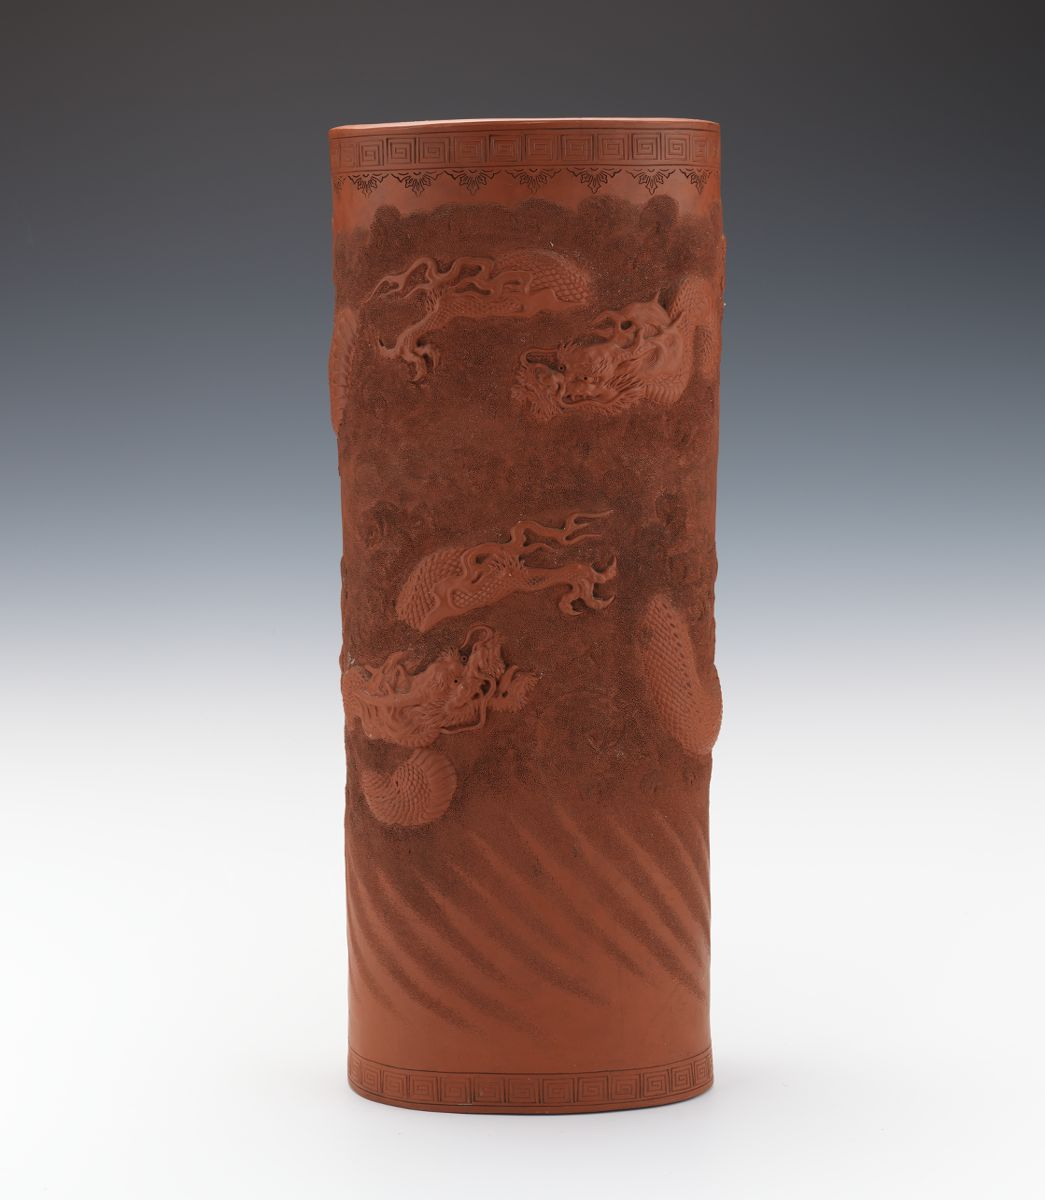 Red Clay Dragon: Red Clay Dragon Japanese Umbrella Stand, 11.01.14, Sold